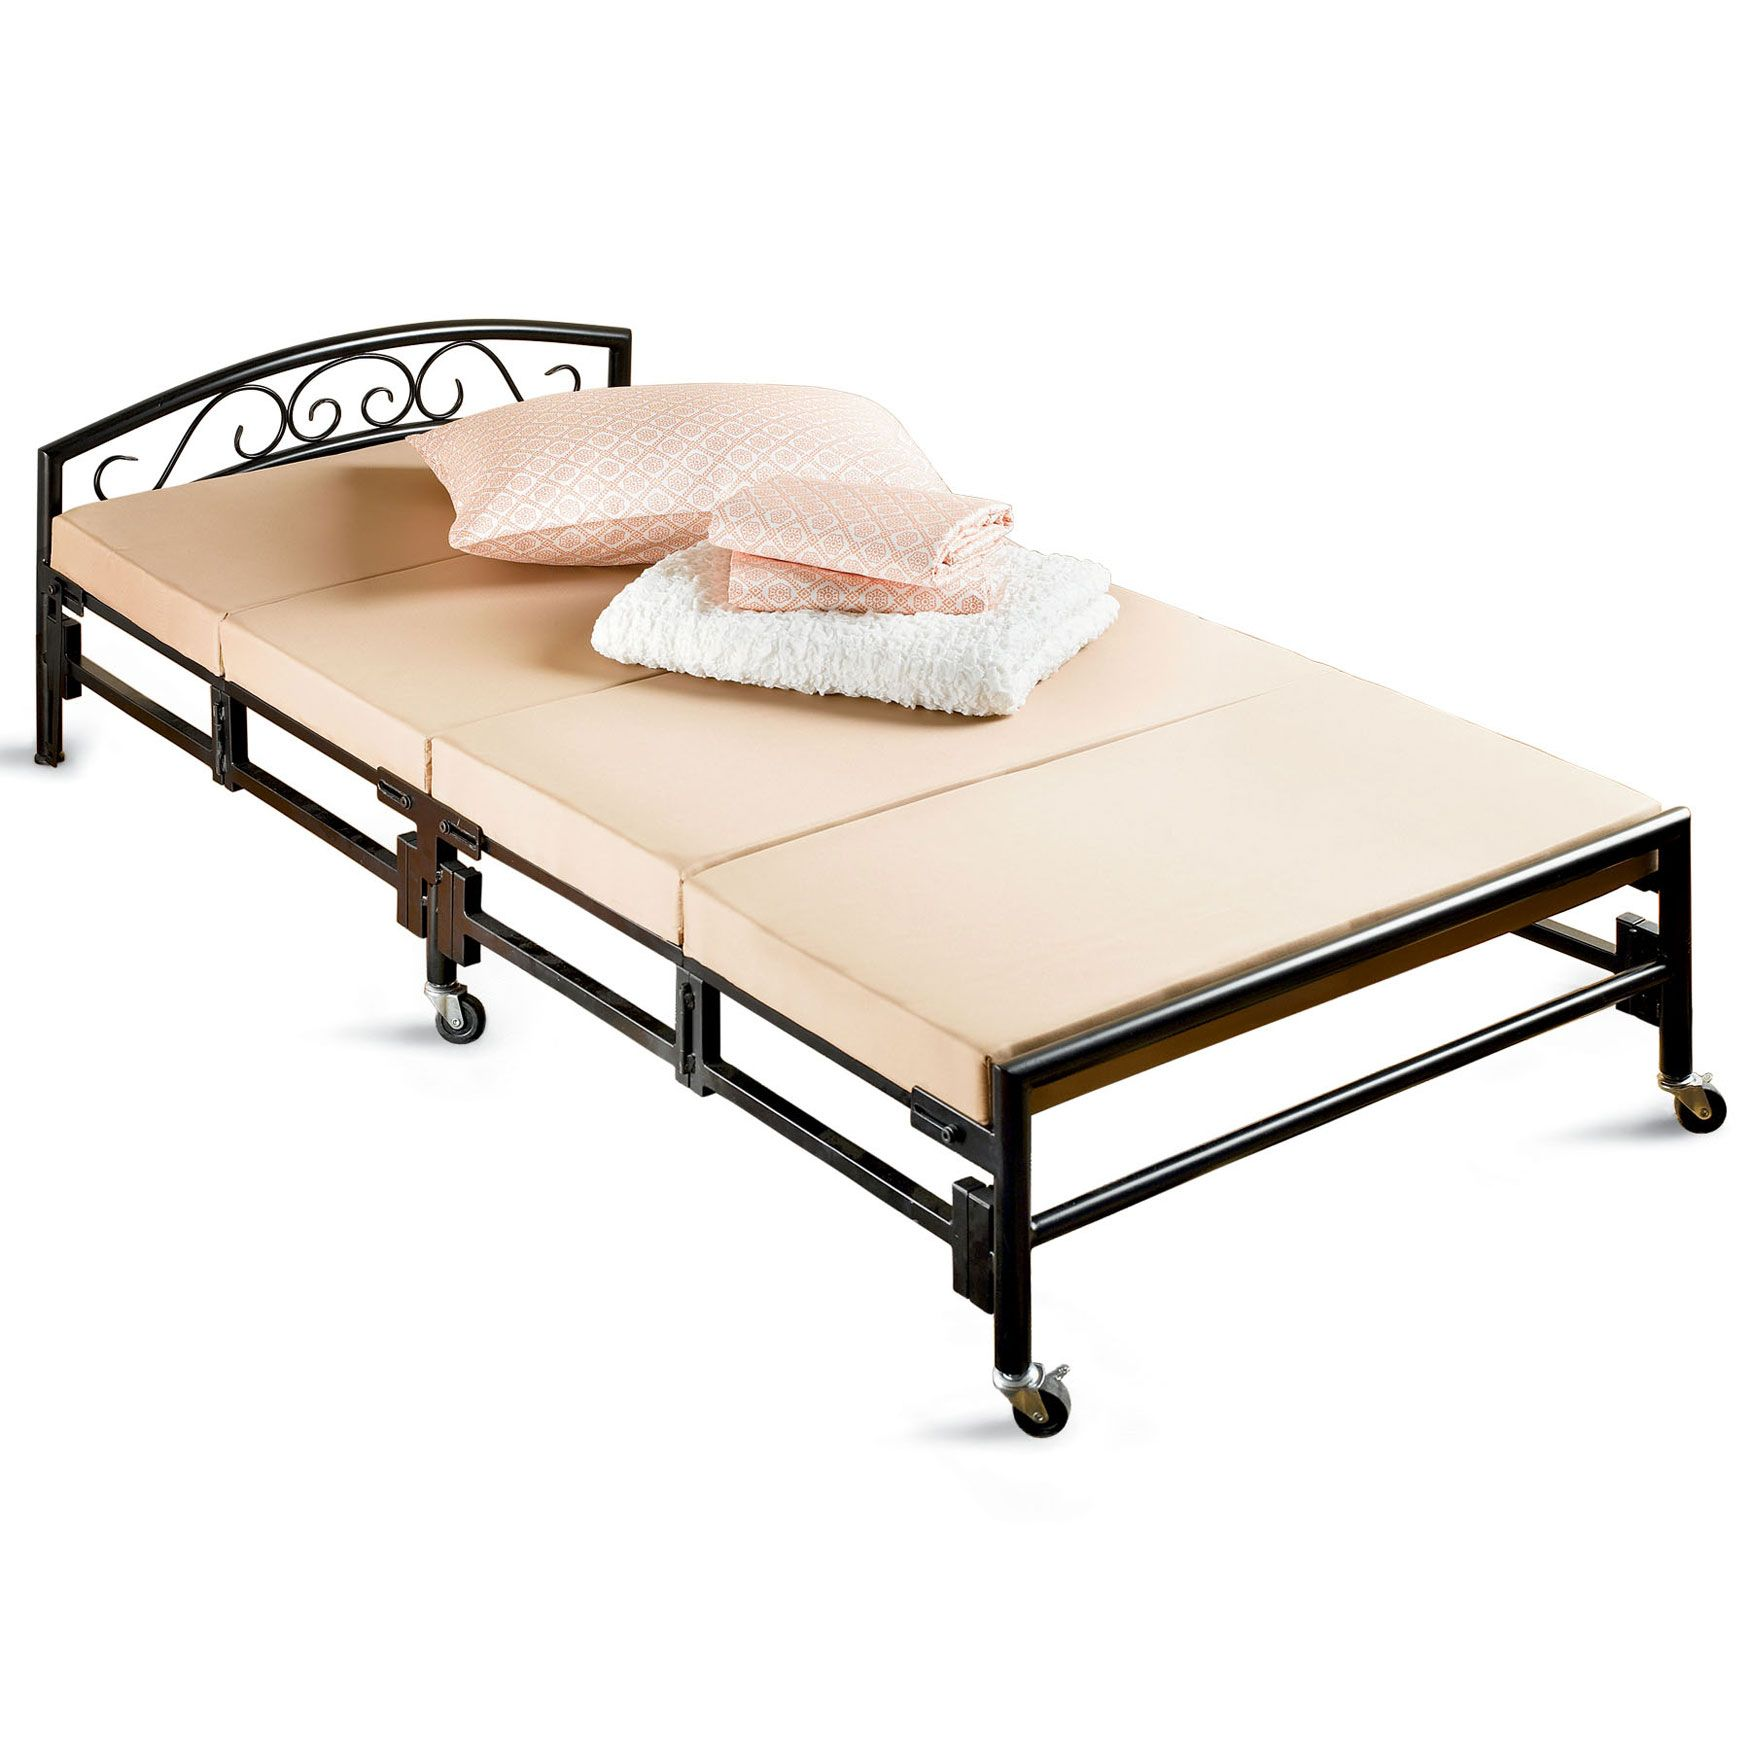 Best Extra Sturdy Folding Bed Oversized Bedding Furniture 640 x 480